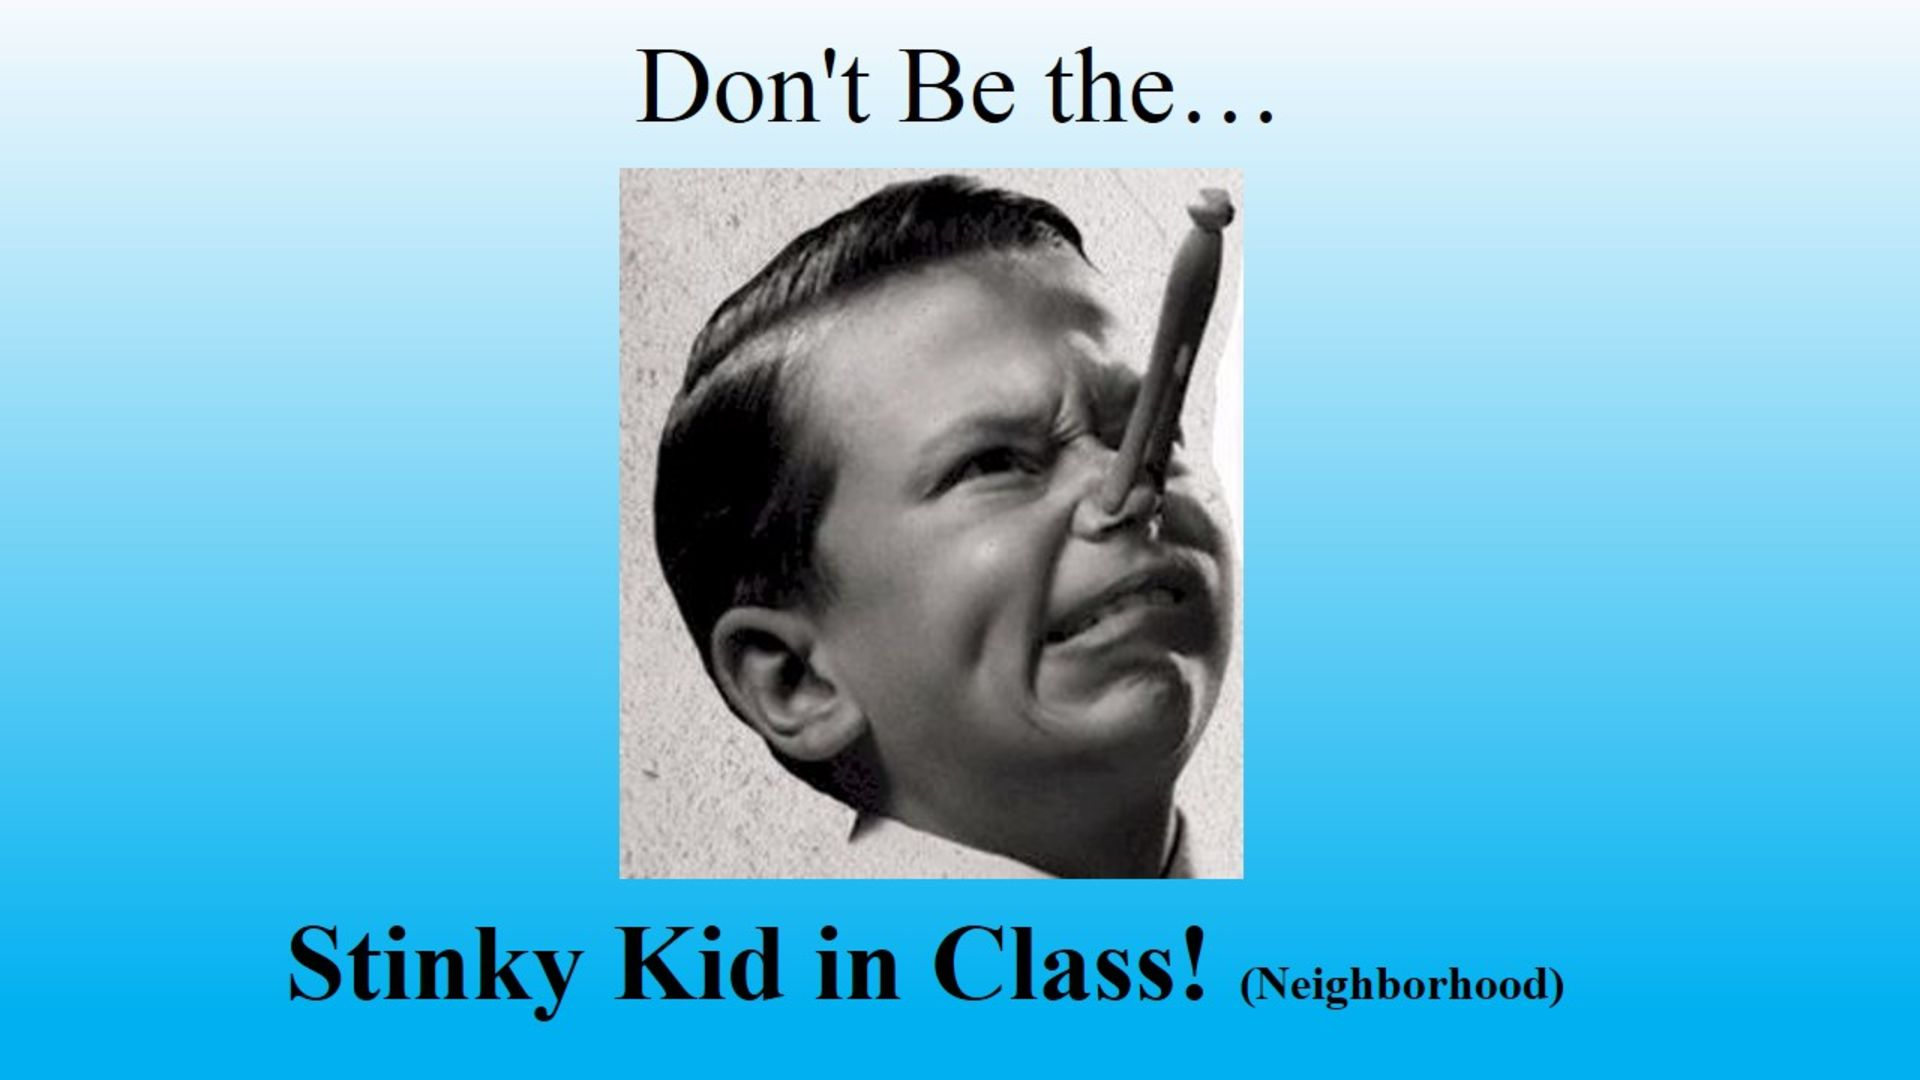 Don't Be the Stinky Kid in Class!